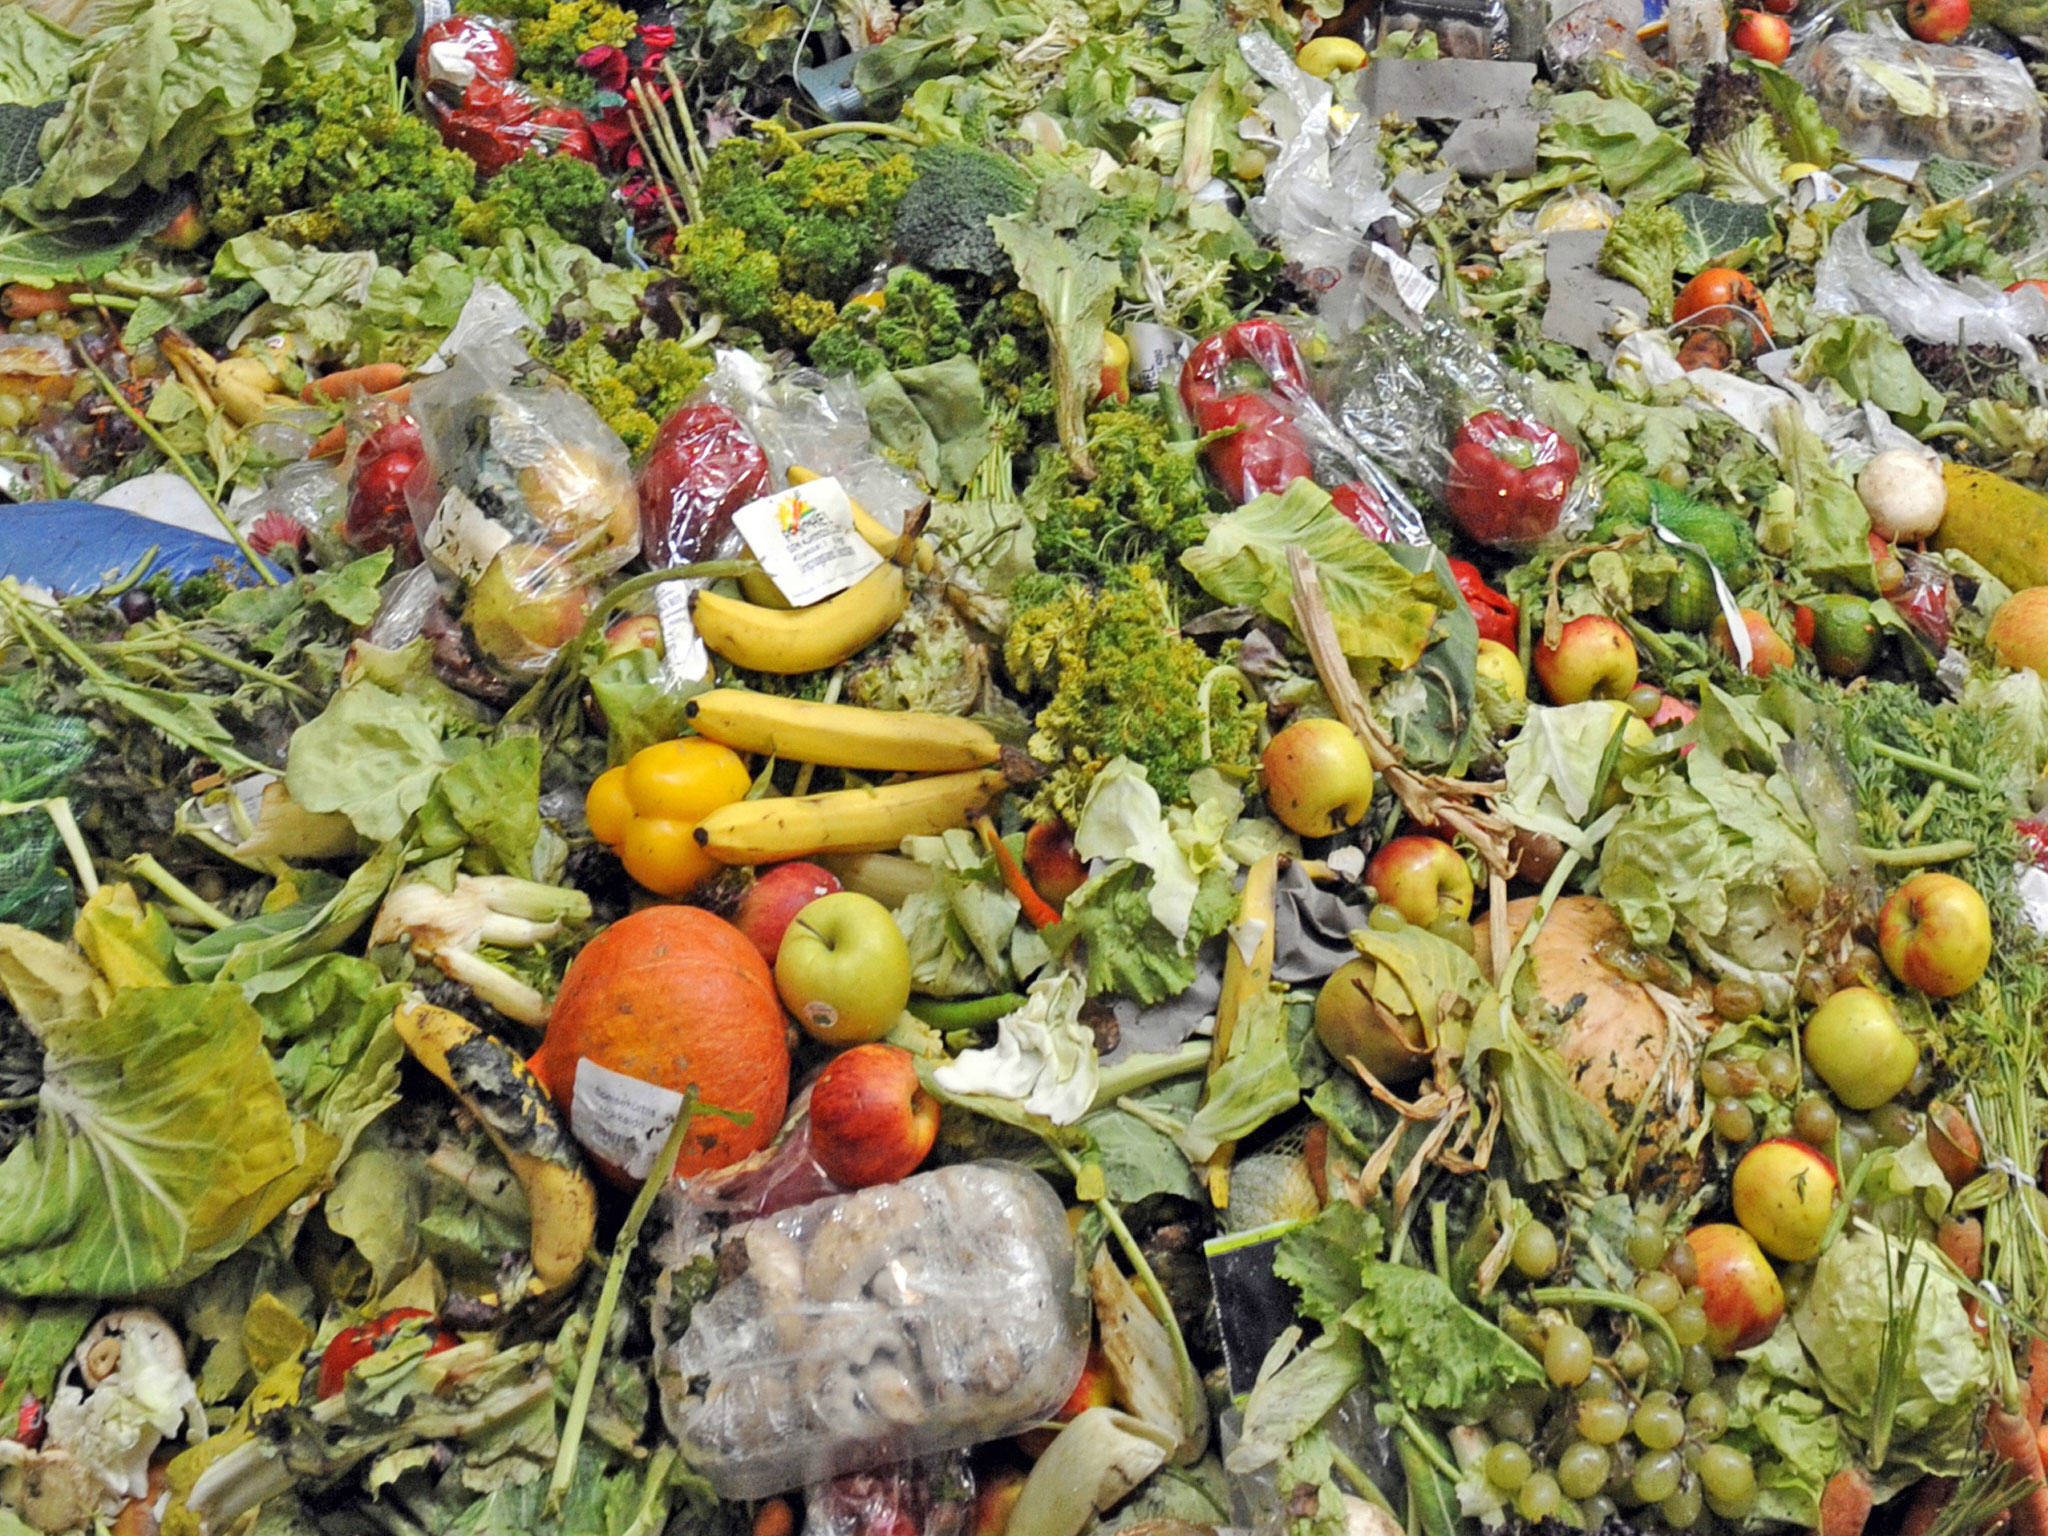 Sign Our Petition To Force Supermarkets To Donate Unsold Food foodwaste blog